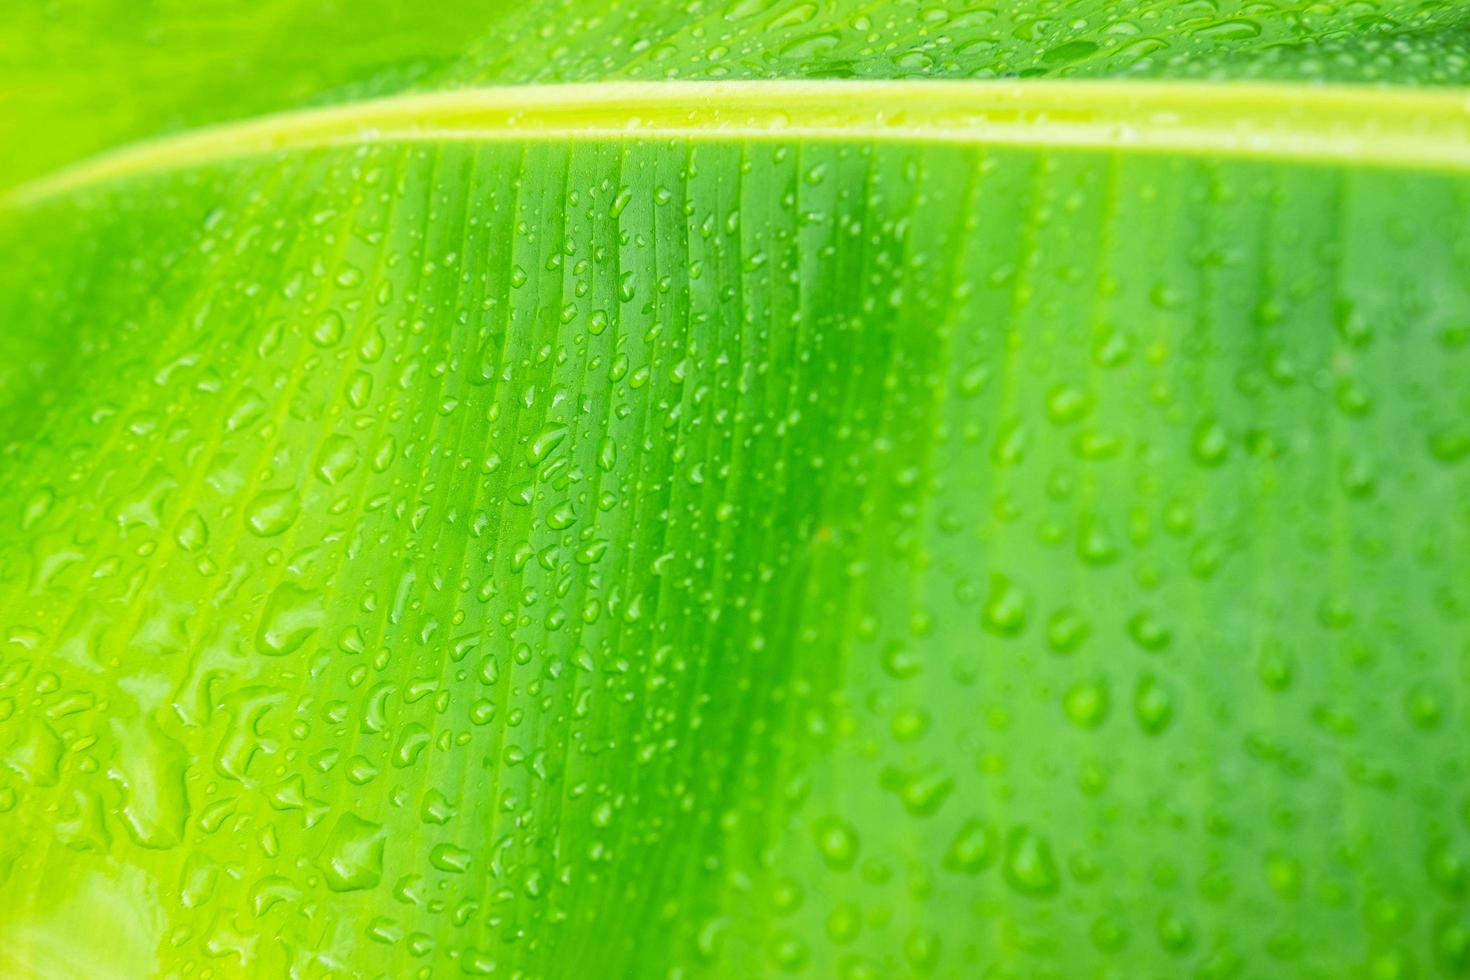 The background of water droplets on the banana leaves after rain. photo